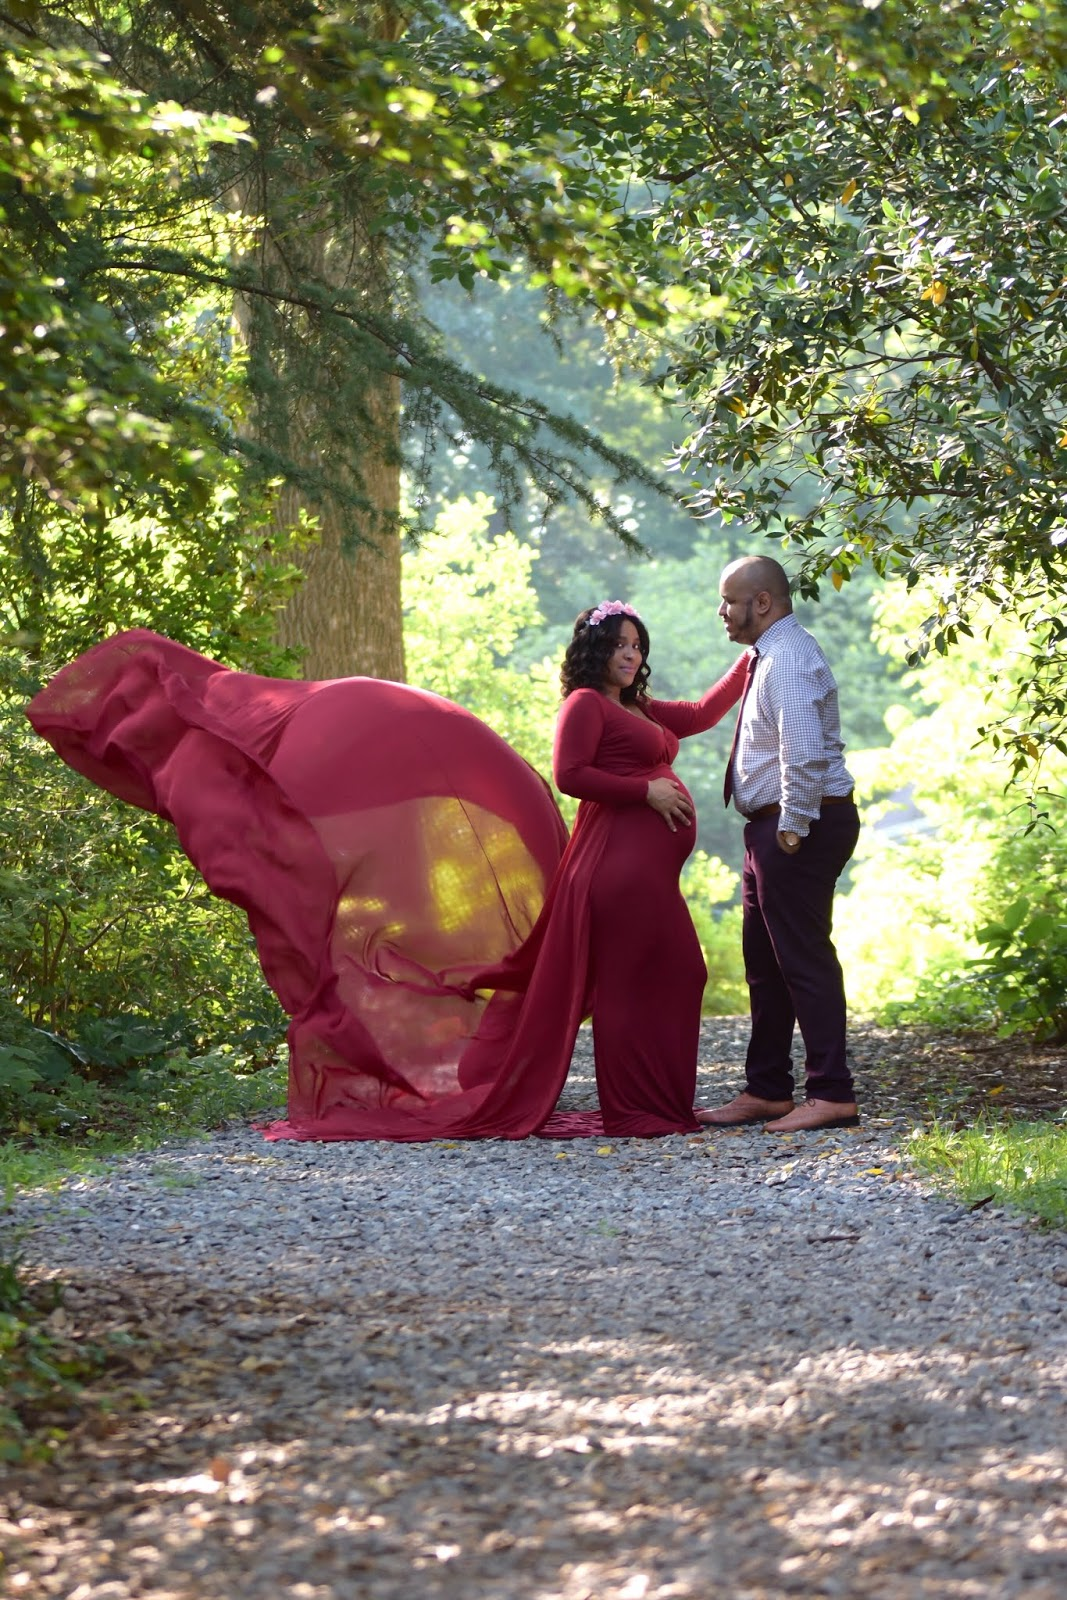 maternity shoot, maternity gown, mama bump rentals, maternity shoot ideas, pregnant, 35 weeks